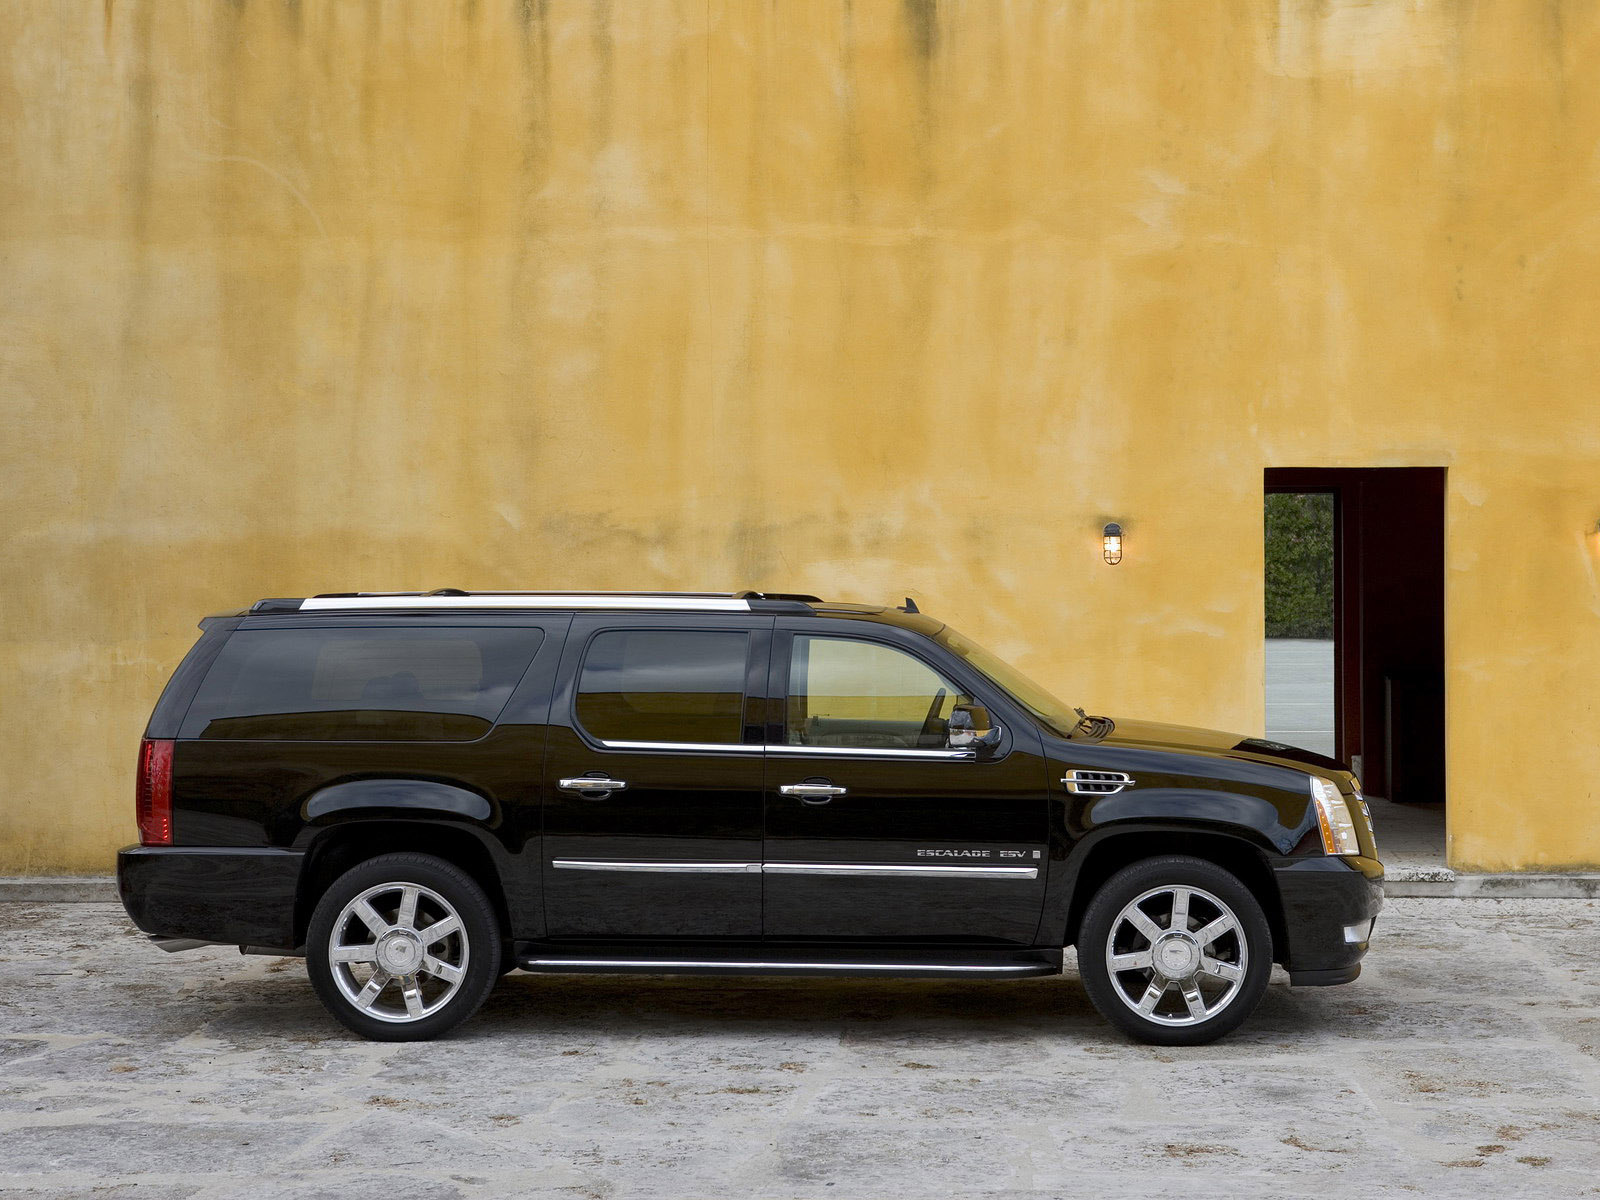 Cadillac Escalade photo 34634